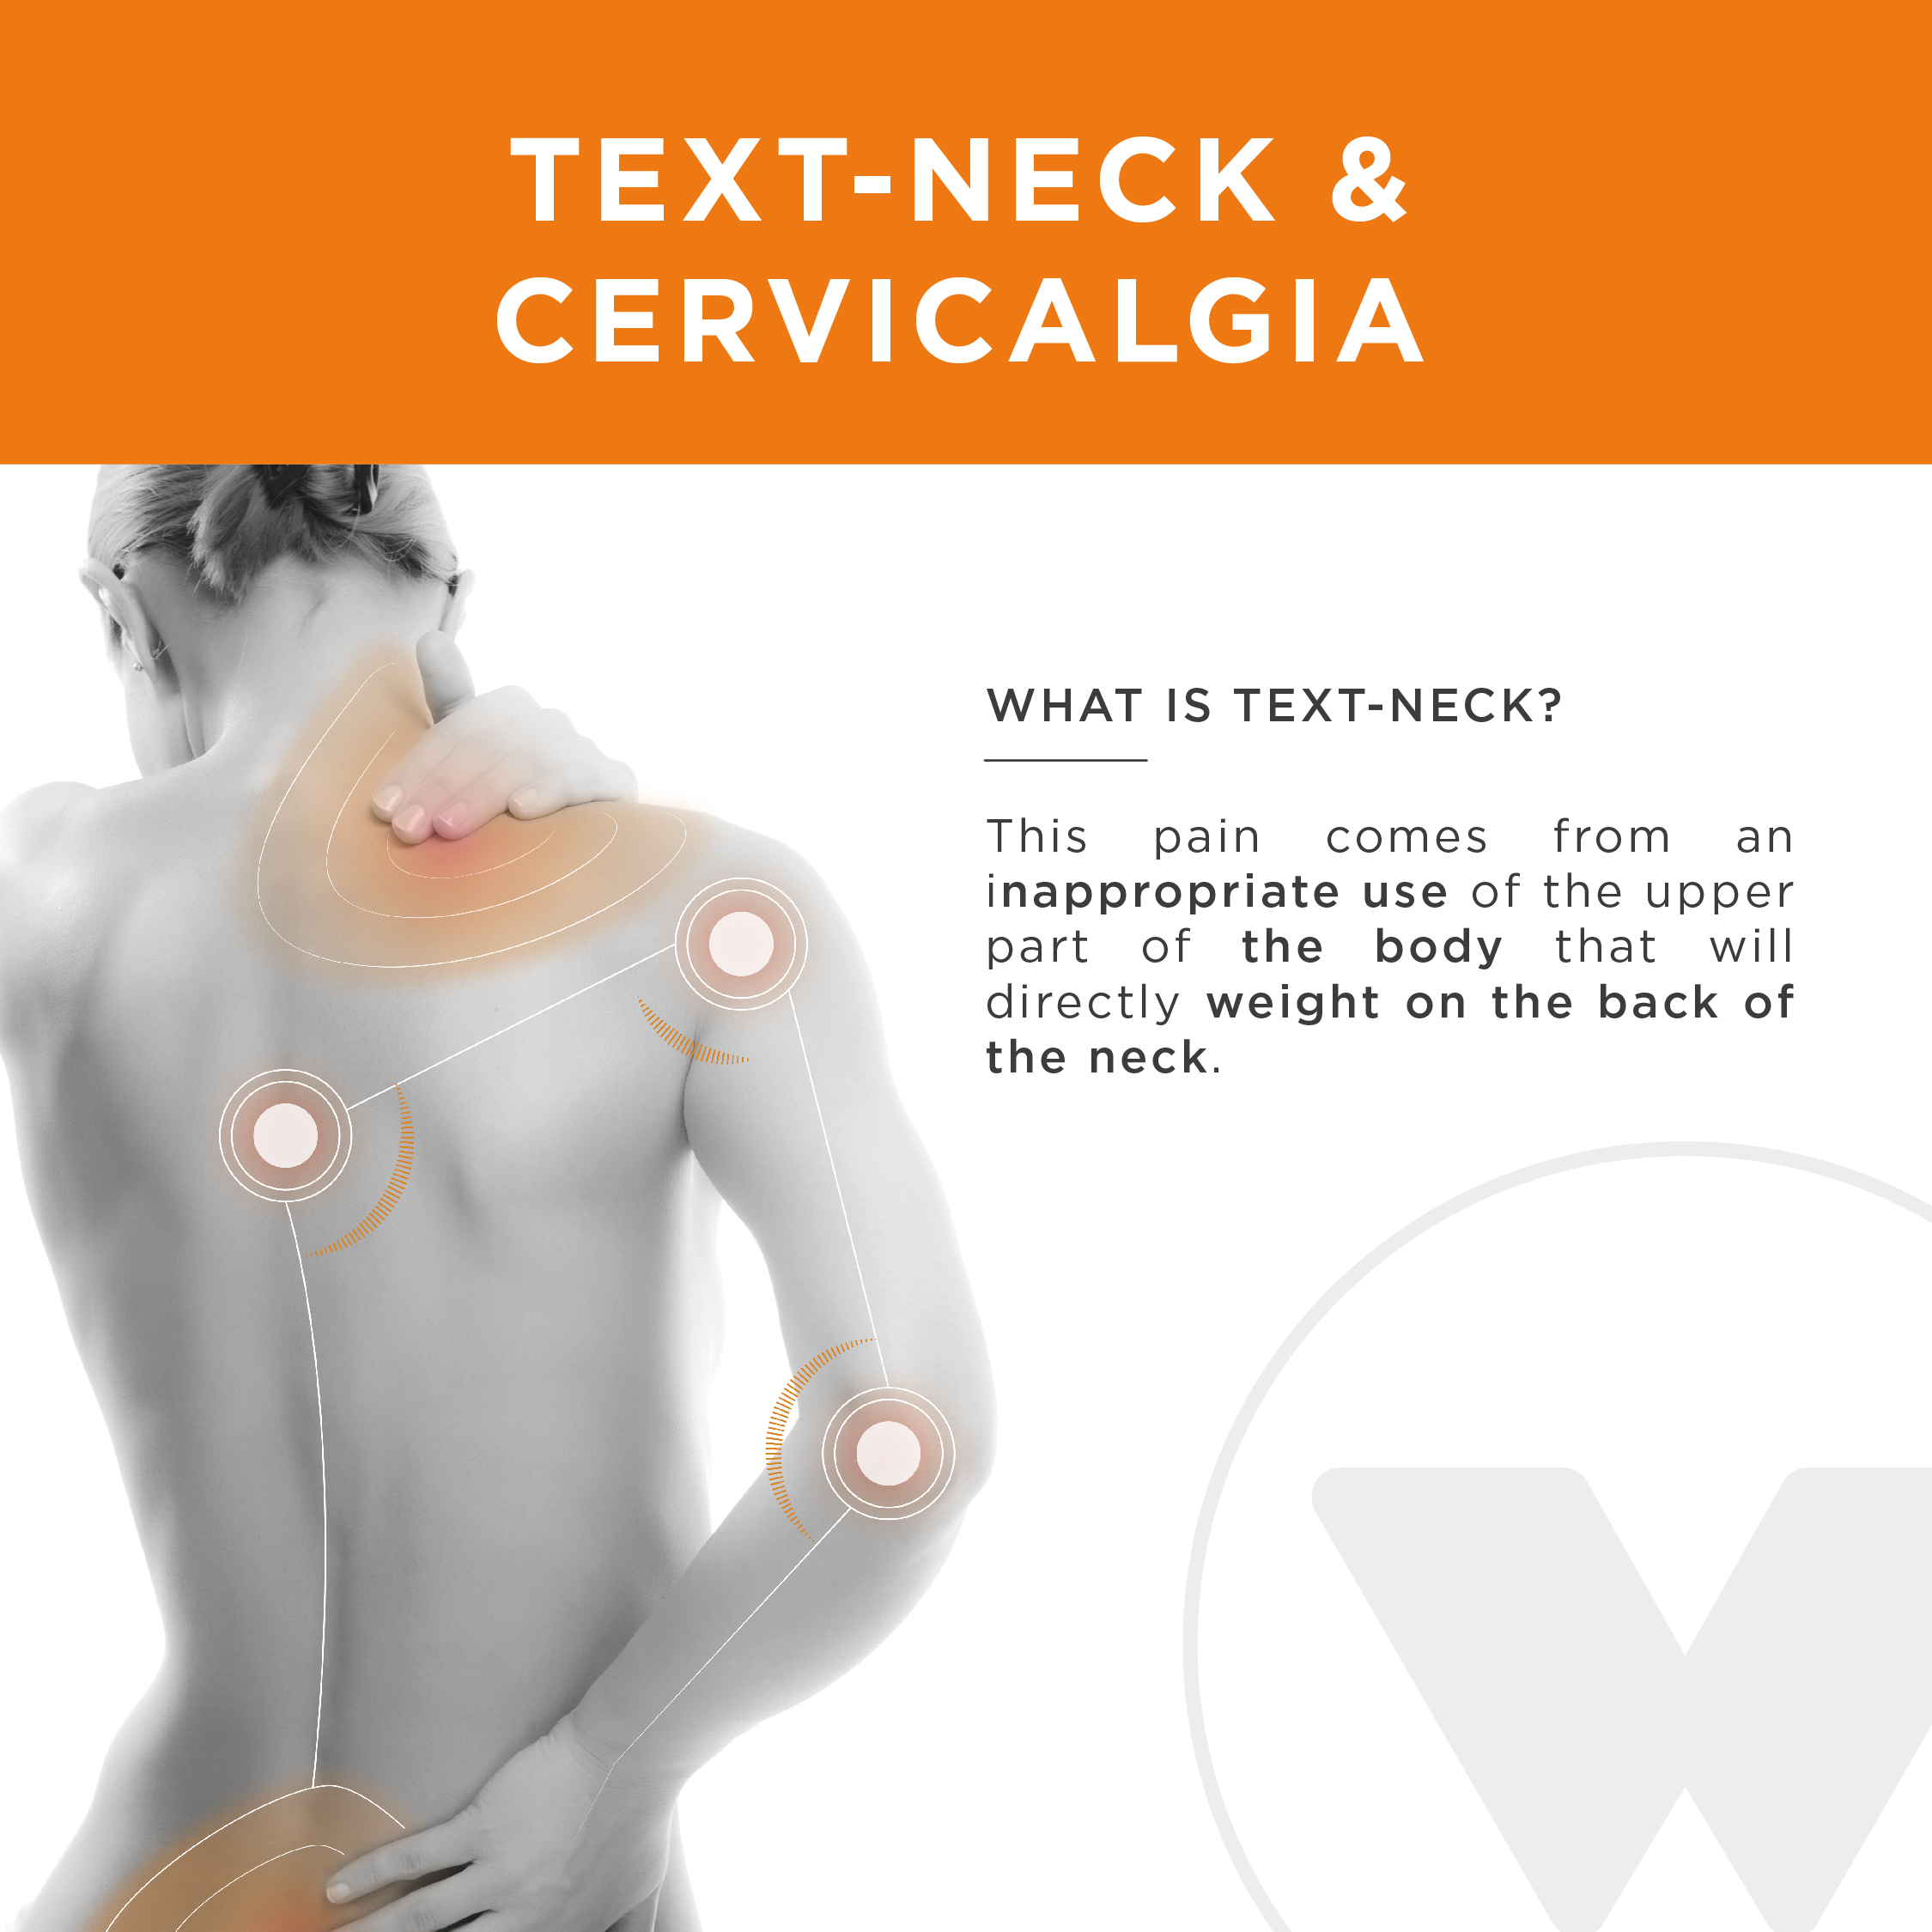 Cervicalgias text-neck